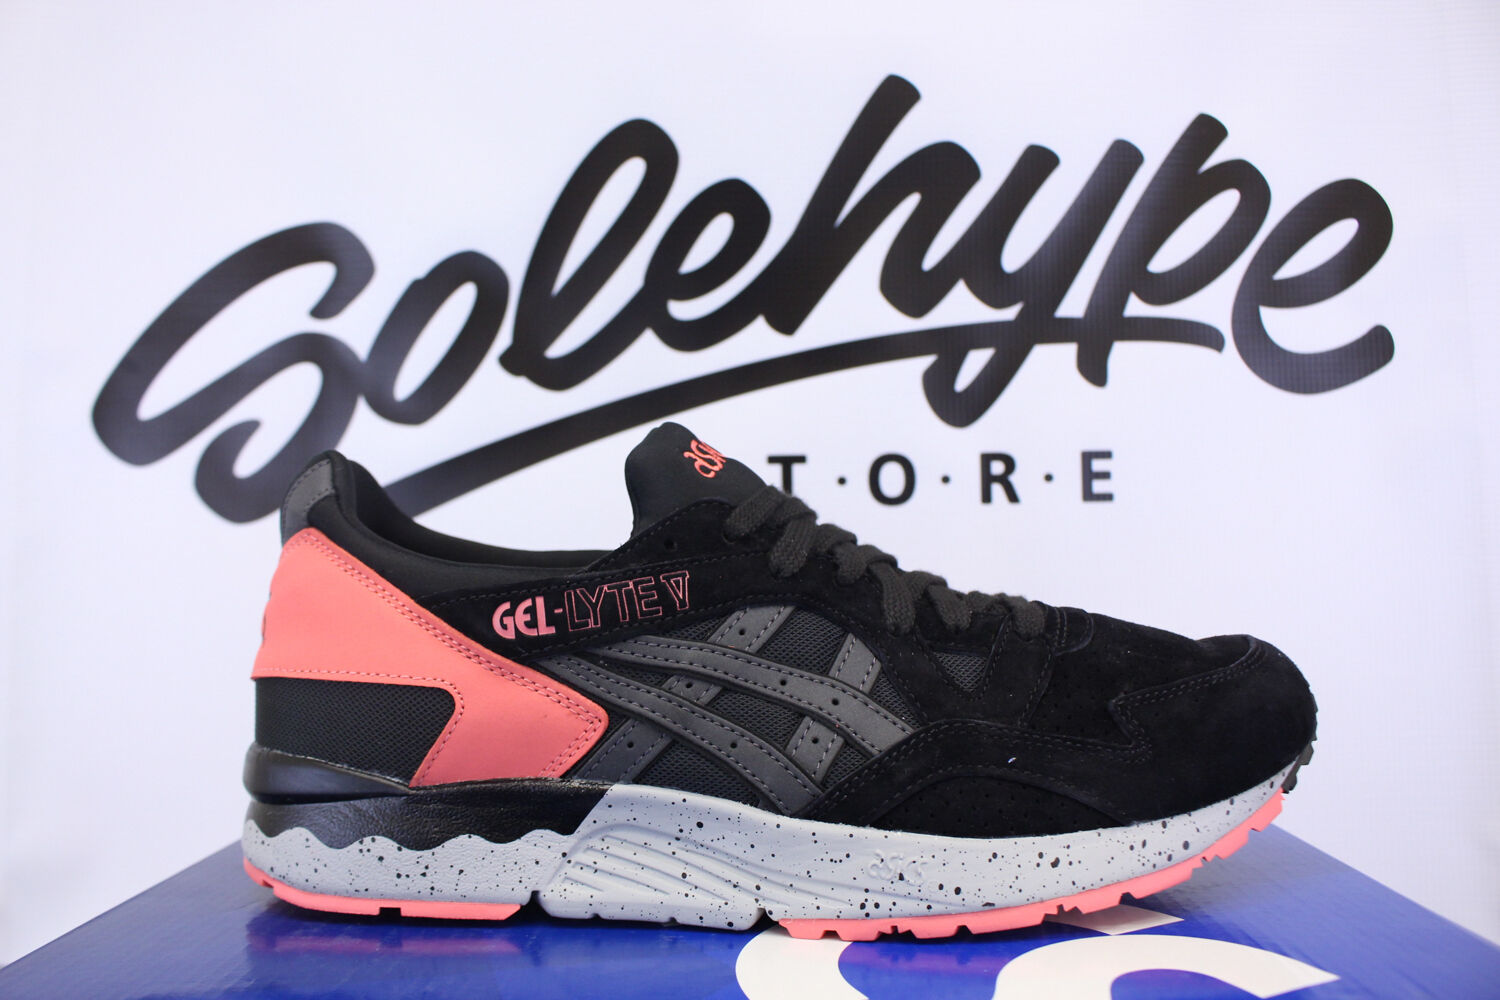 ASICS GEL LYTE V BLACK GREY INFRARED H7N4L 9090 Price reduction New shoes for men and women, limited time discount